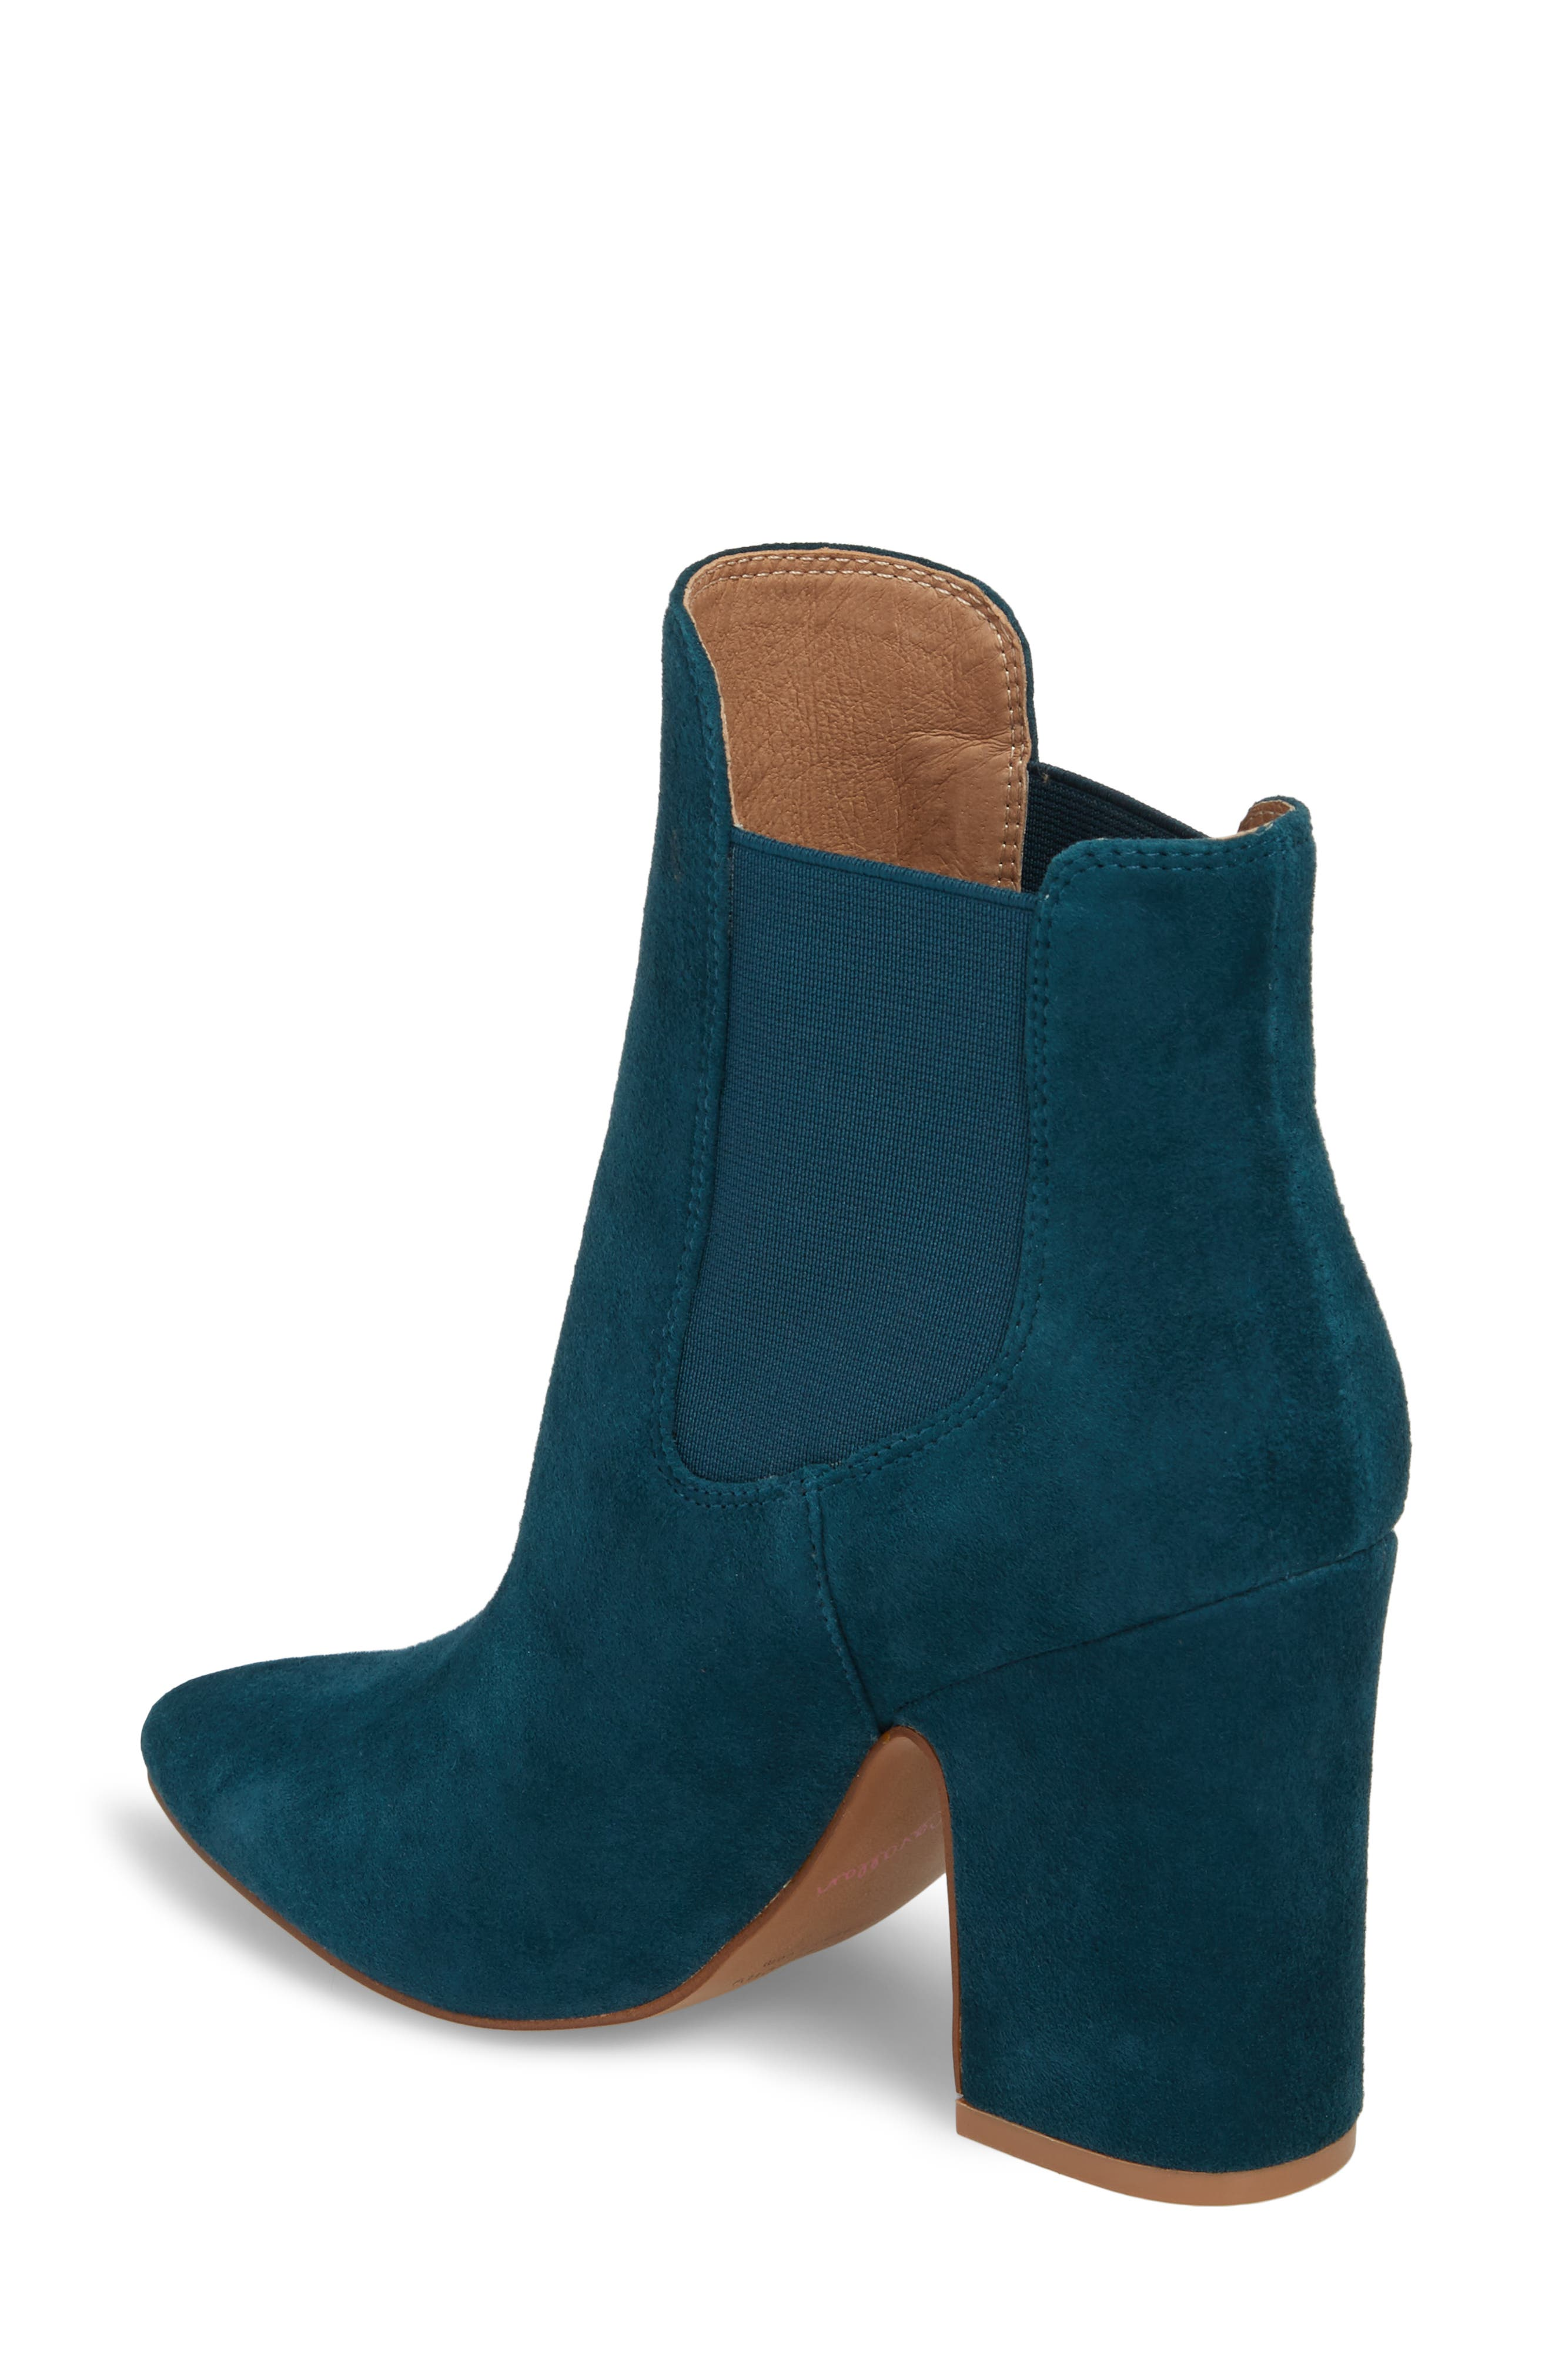 Starlight Bootie,                             Alternate thumbnail 2, color,                             Teal Suede